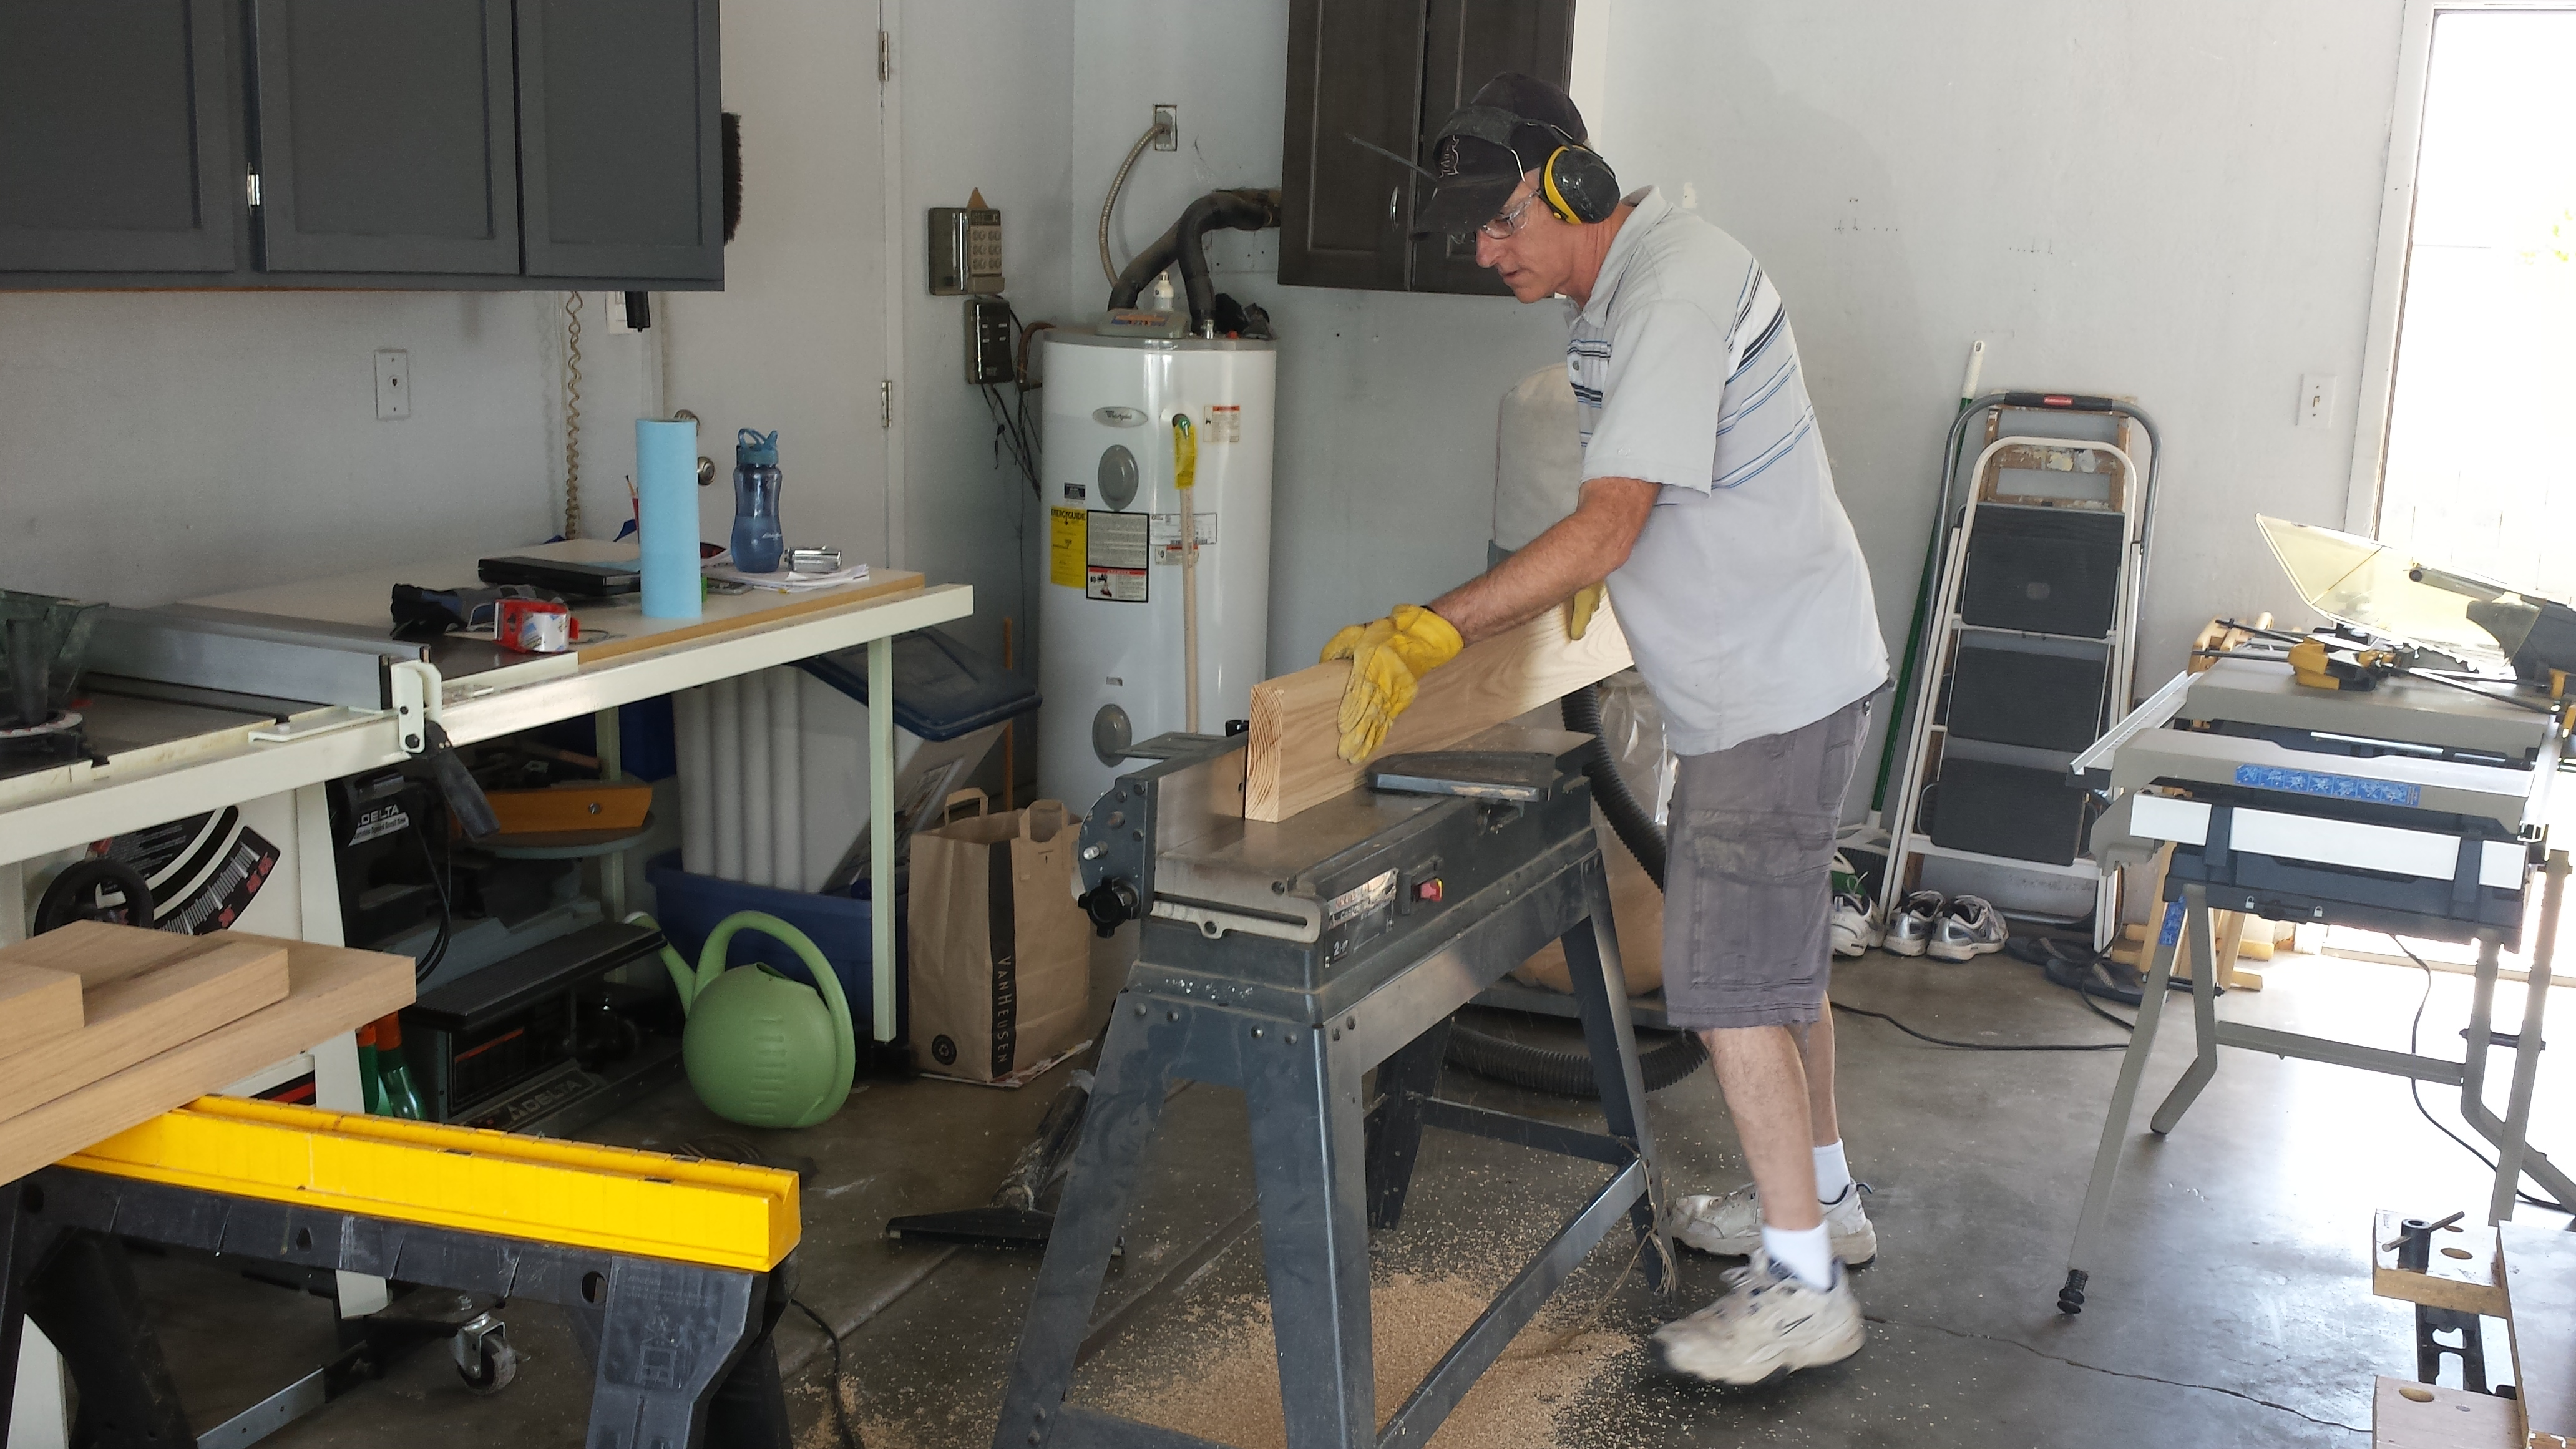 My dad using the jointer to square up the edges and make a nice flat surface for the legs of the furniture.